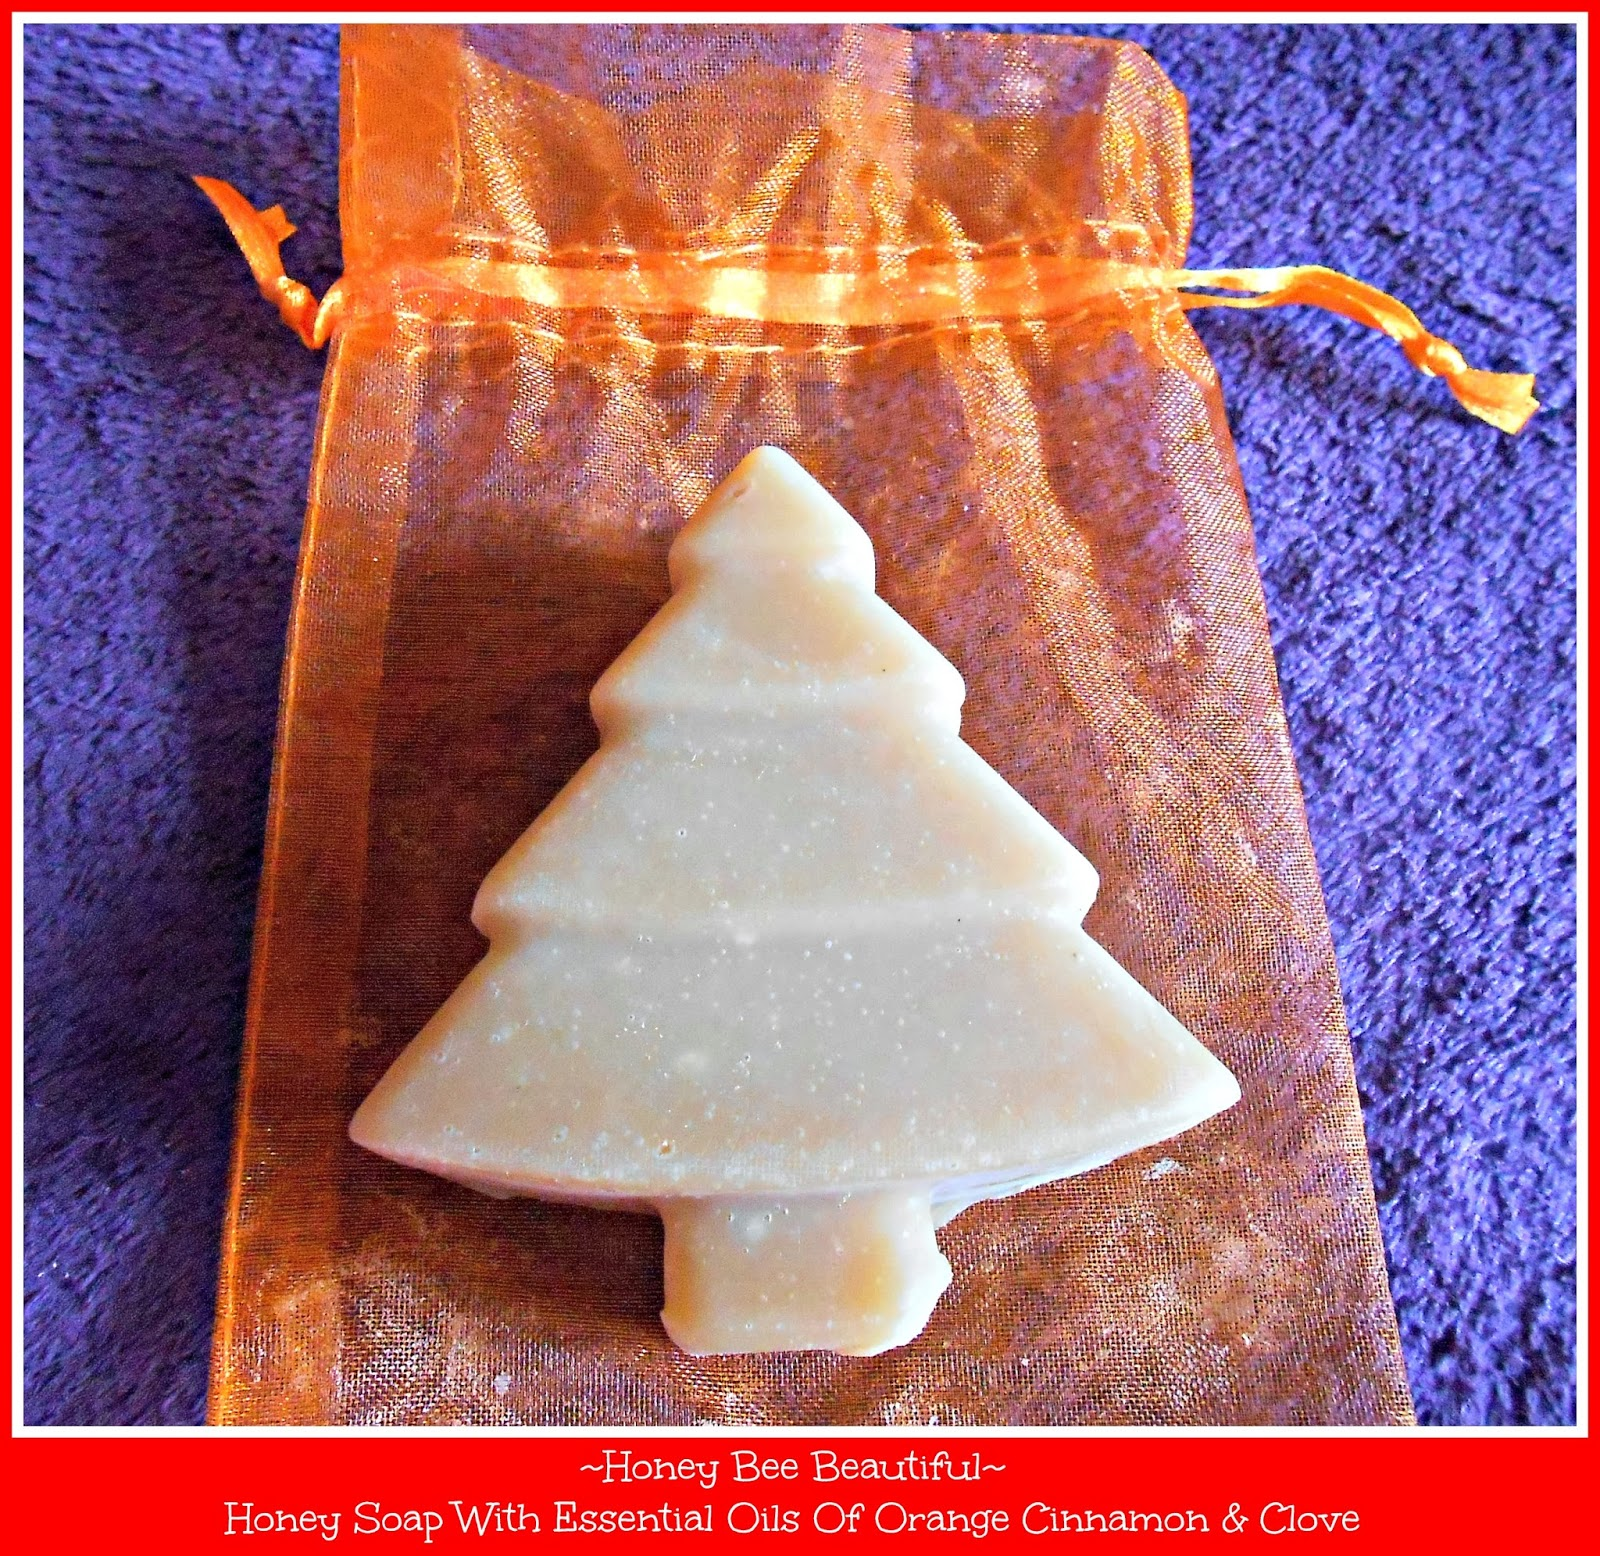 Honey Bee Beautiful Christmas Tree Honey Soap With Essential Oils Of Orange, Cinnamon & Clove